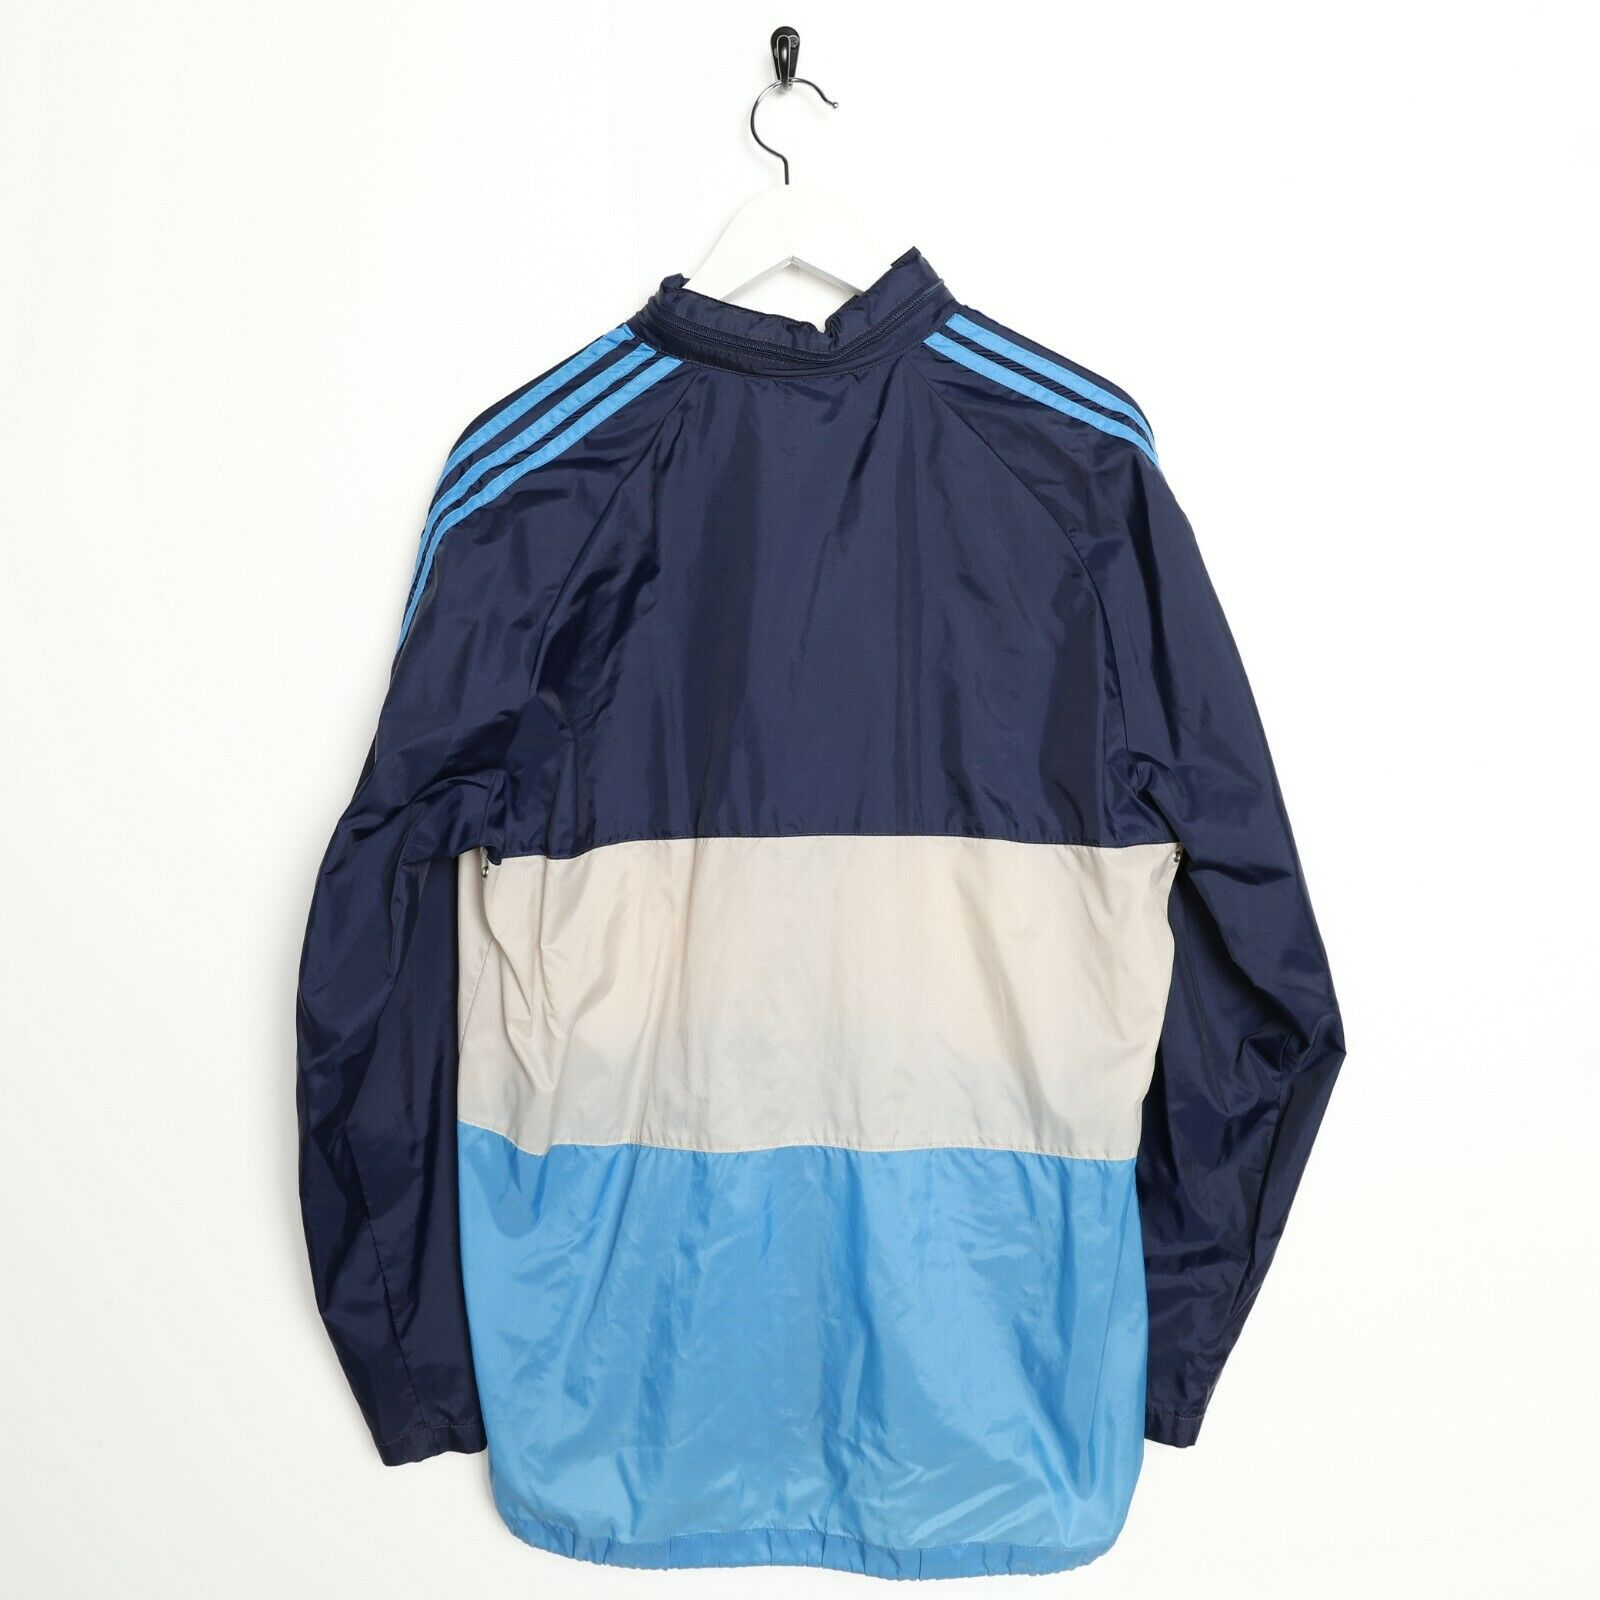 Vintage 80s ADIDAS Lightweight Anorak Windbreaker Jacket Navy Blue | Small S